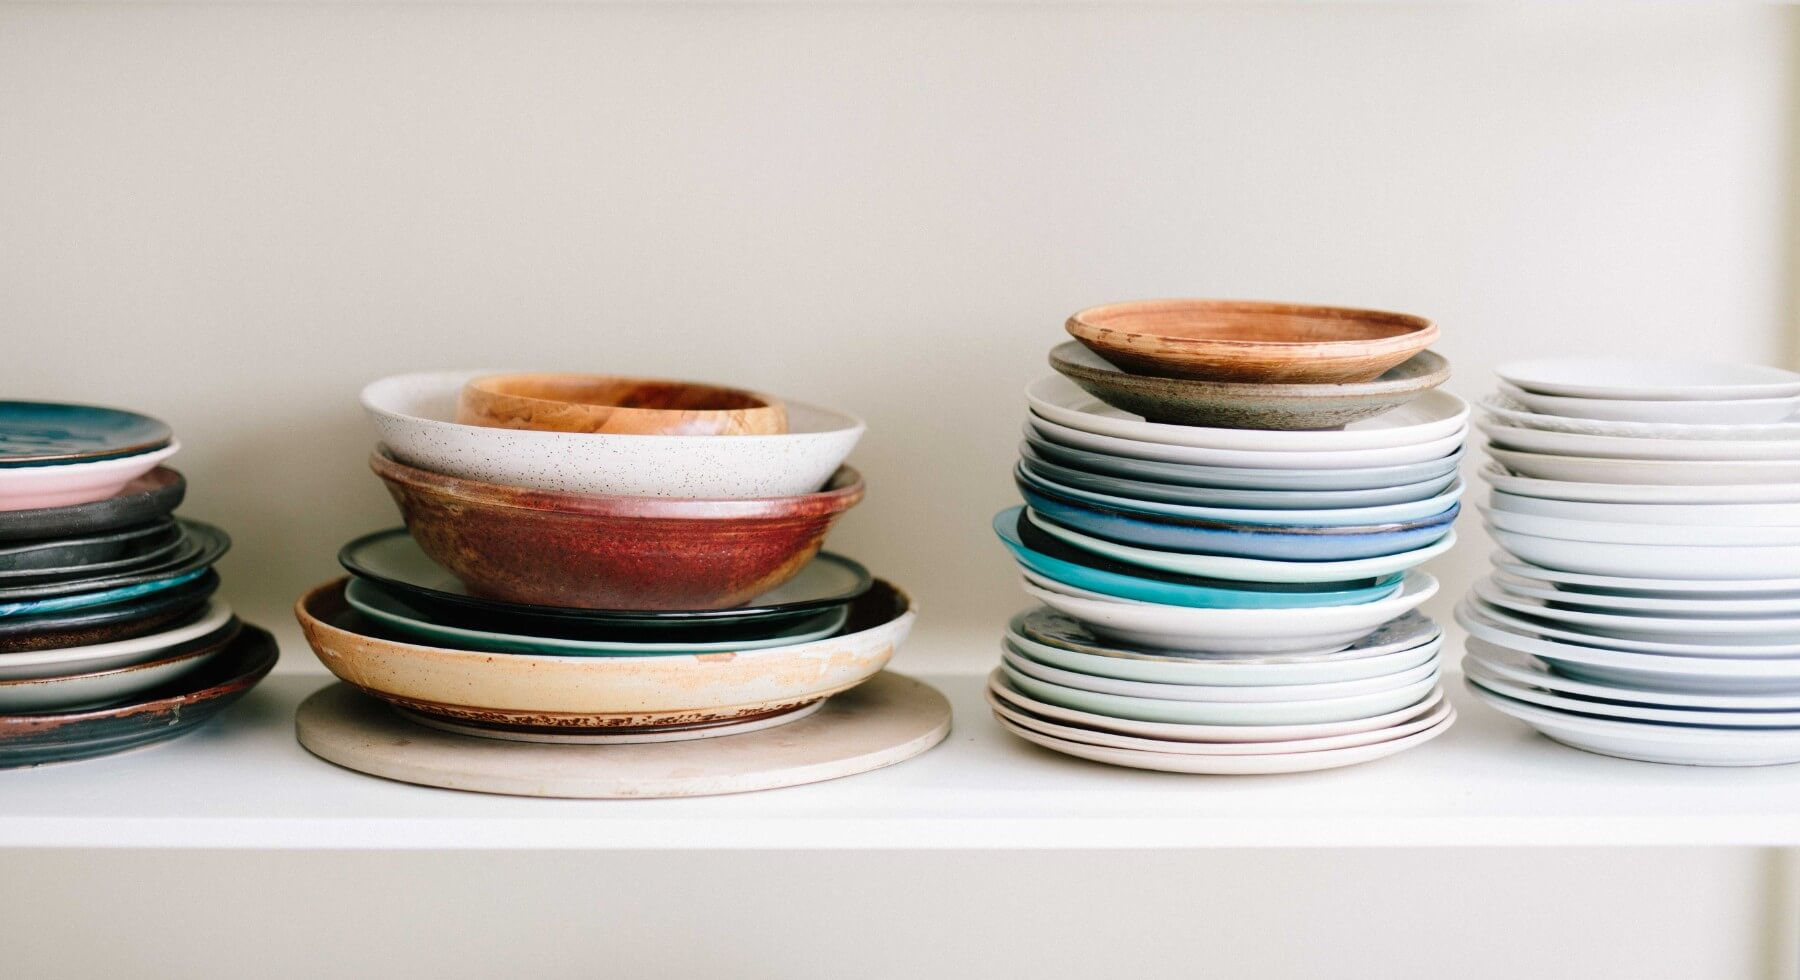 Reviving Scratched Dishes